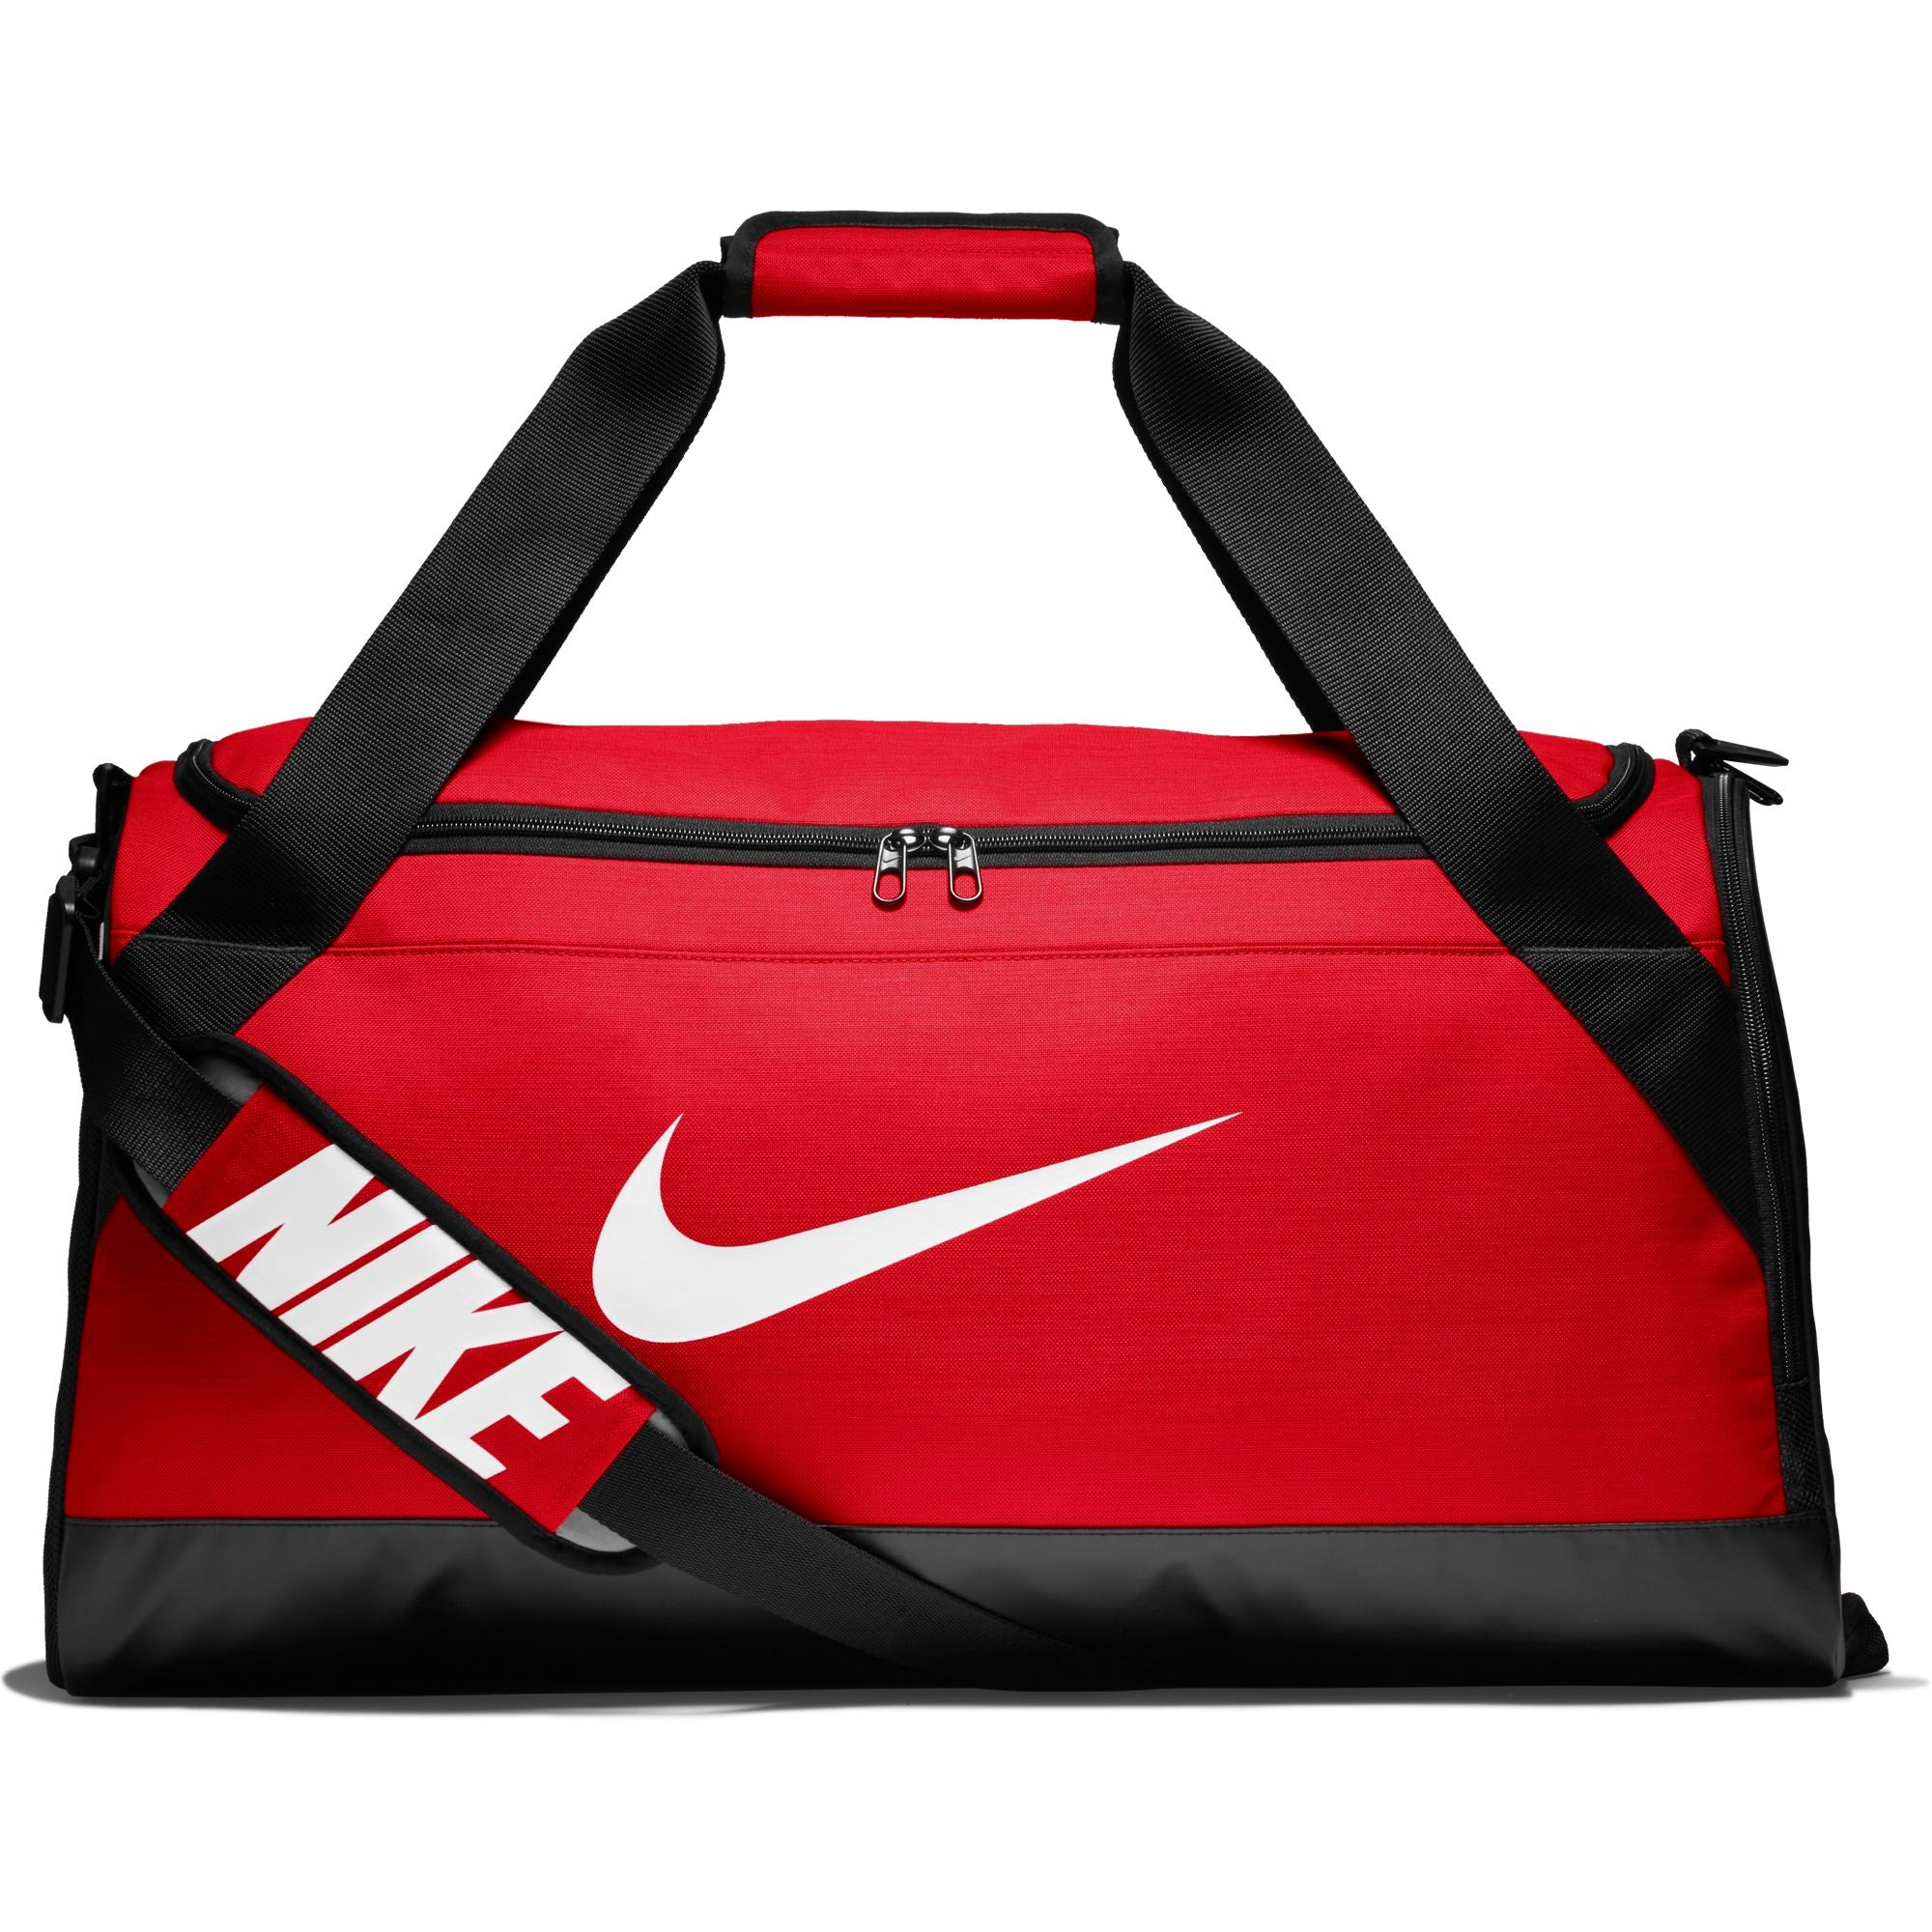 Nike Brasilia Training Duffel Bag (Medium) - University Red/Black/White